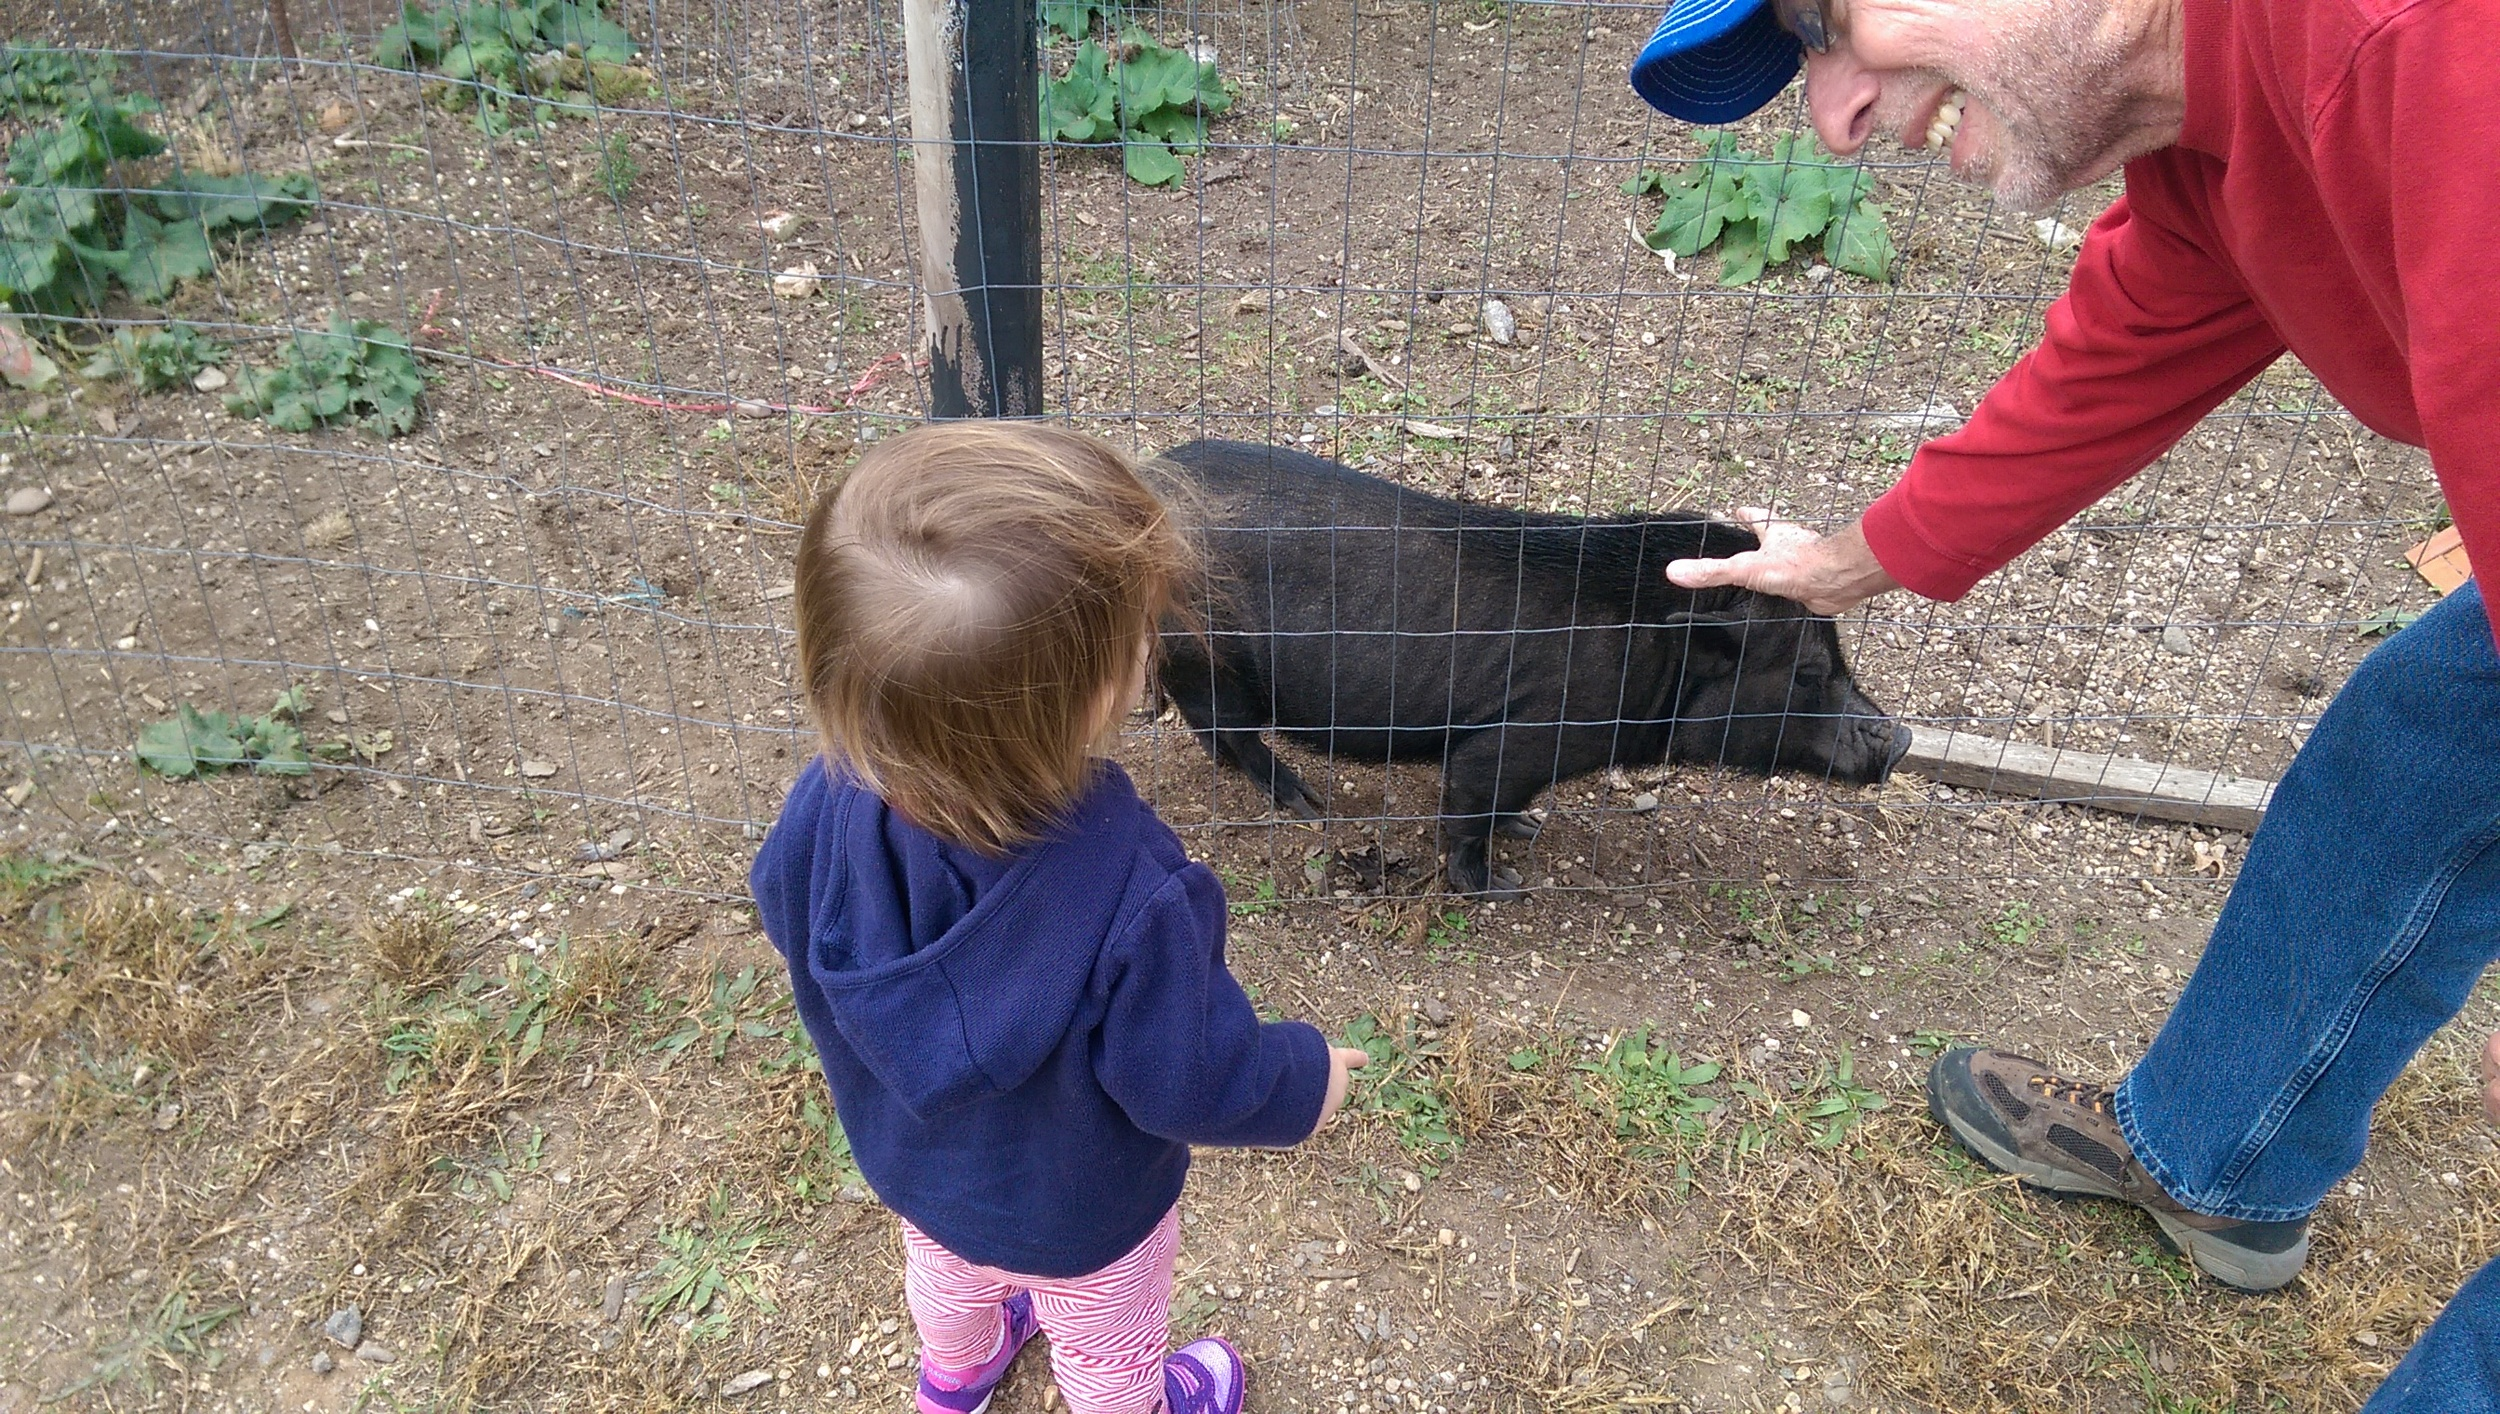 Granddaddy and Cece petting the pig.